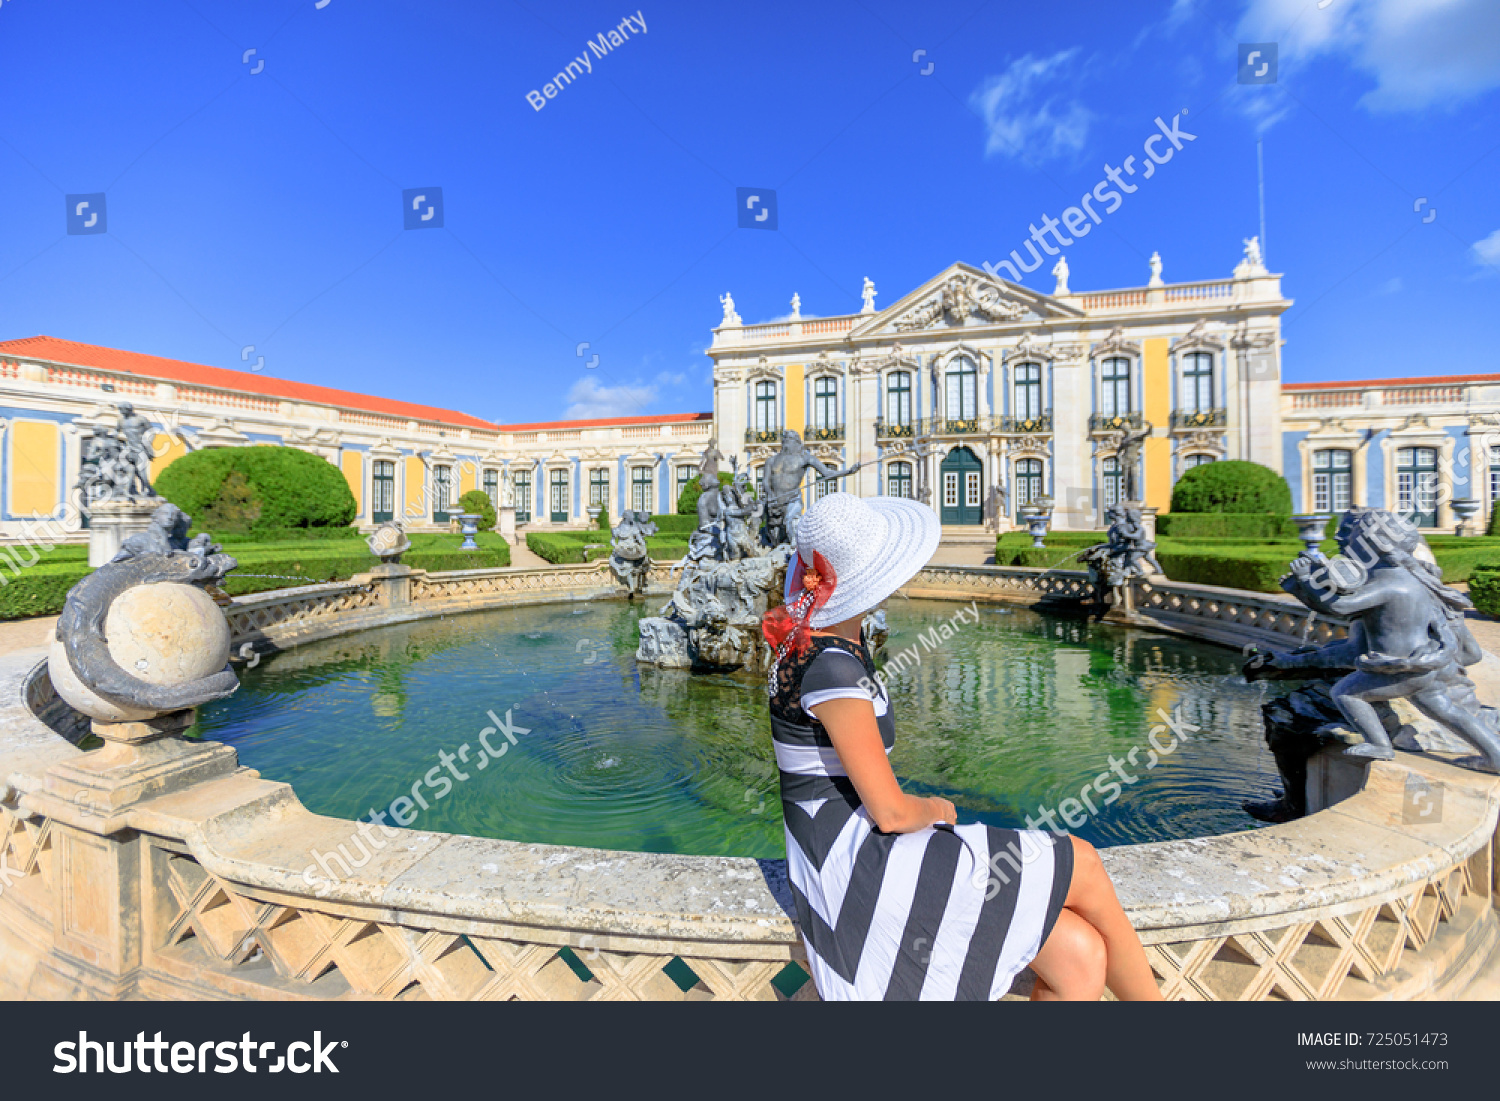 Elegant Woman Sitting In Neptune Gardens Of Queluz National Palace Or Royal